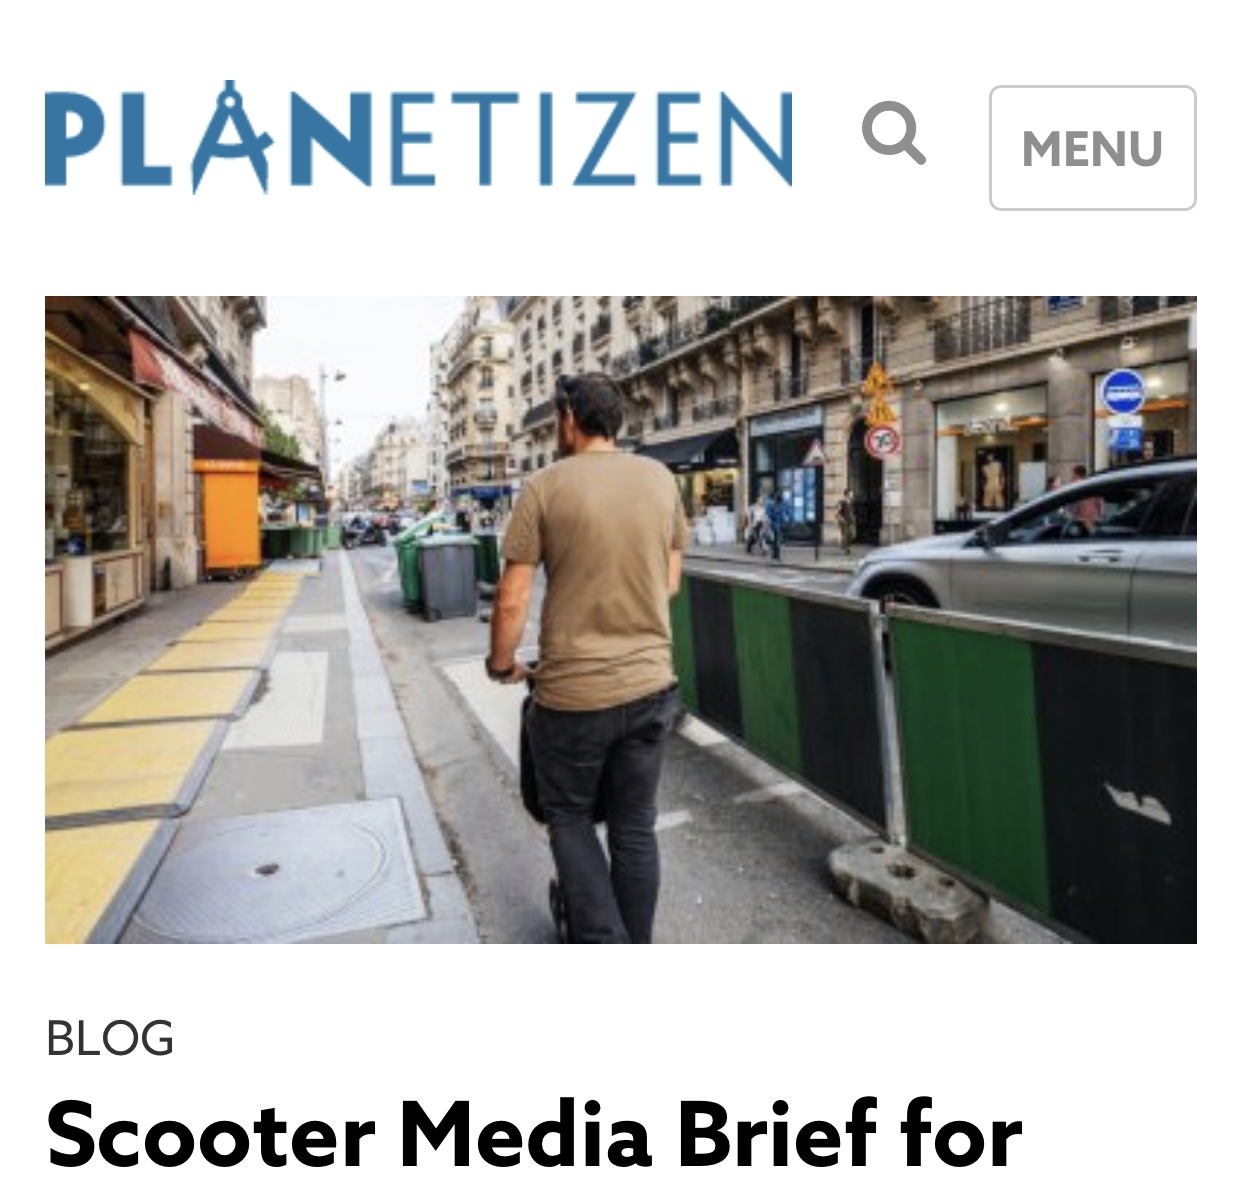 Planetizen - Planetizen: The independent resource for people passionate about planning and related fields. Planning: A professional practice and an academic study focused on the future of built environments and connected natural environments—from the smallest towns to the largest cities and everything in between.https://www.planetizen.com